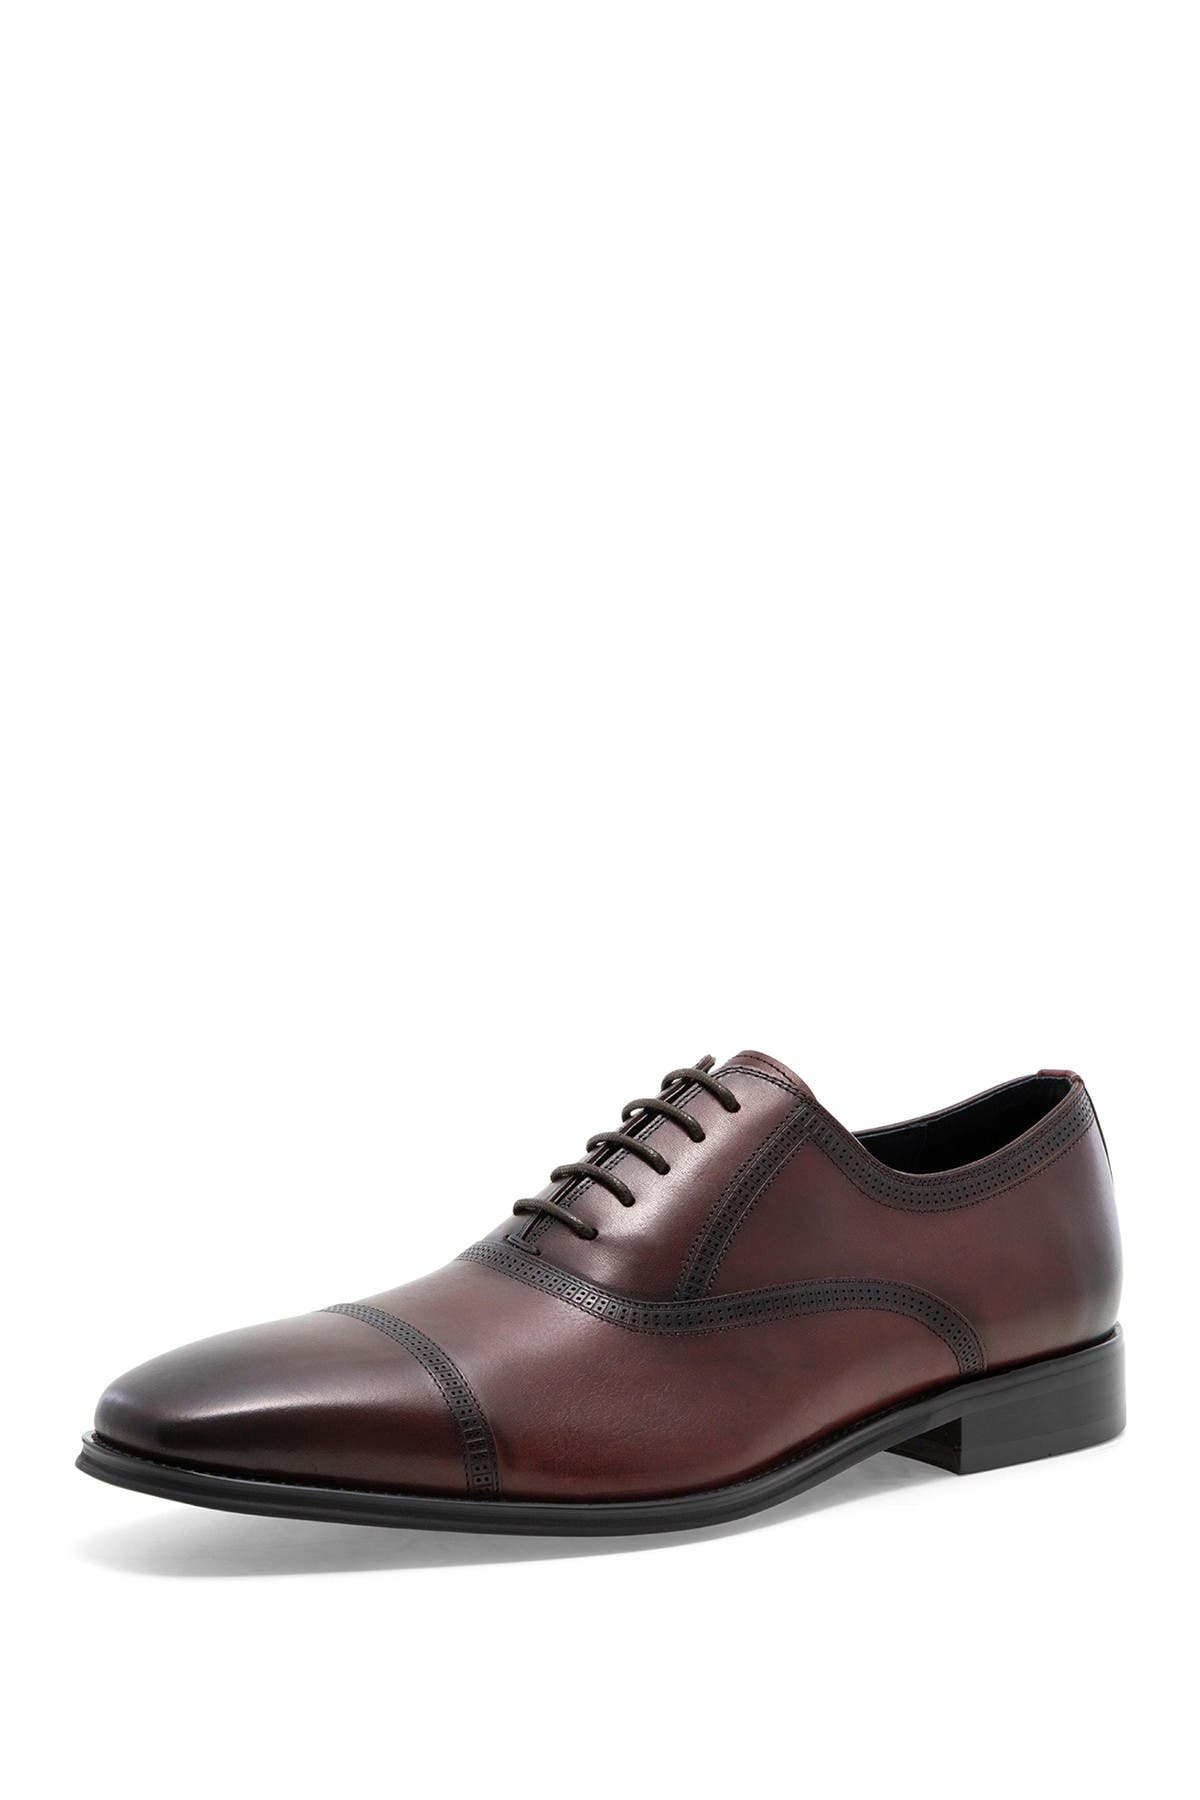 Image of J75 By Jump McCrae Cap Toe Oxford